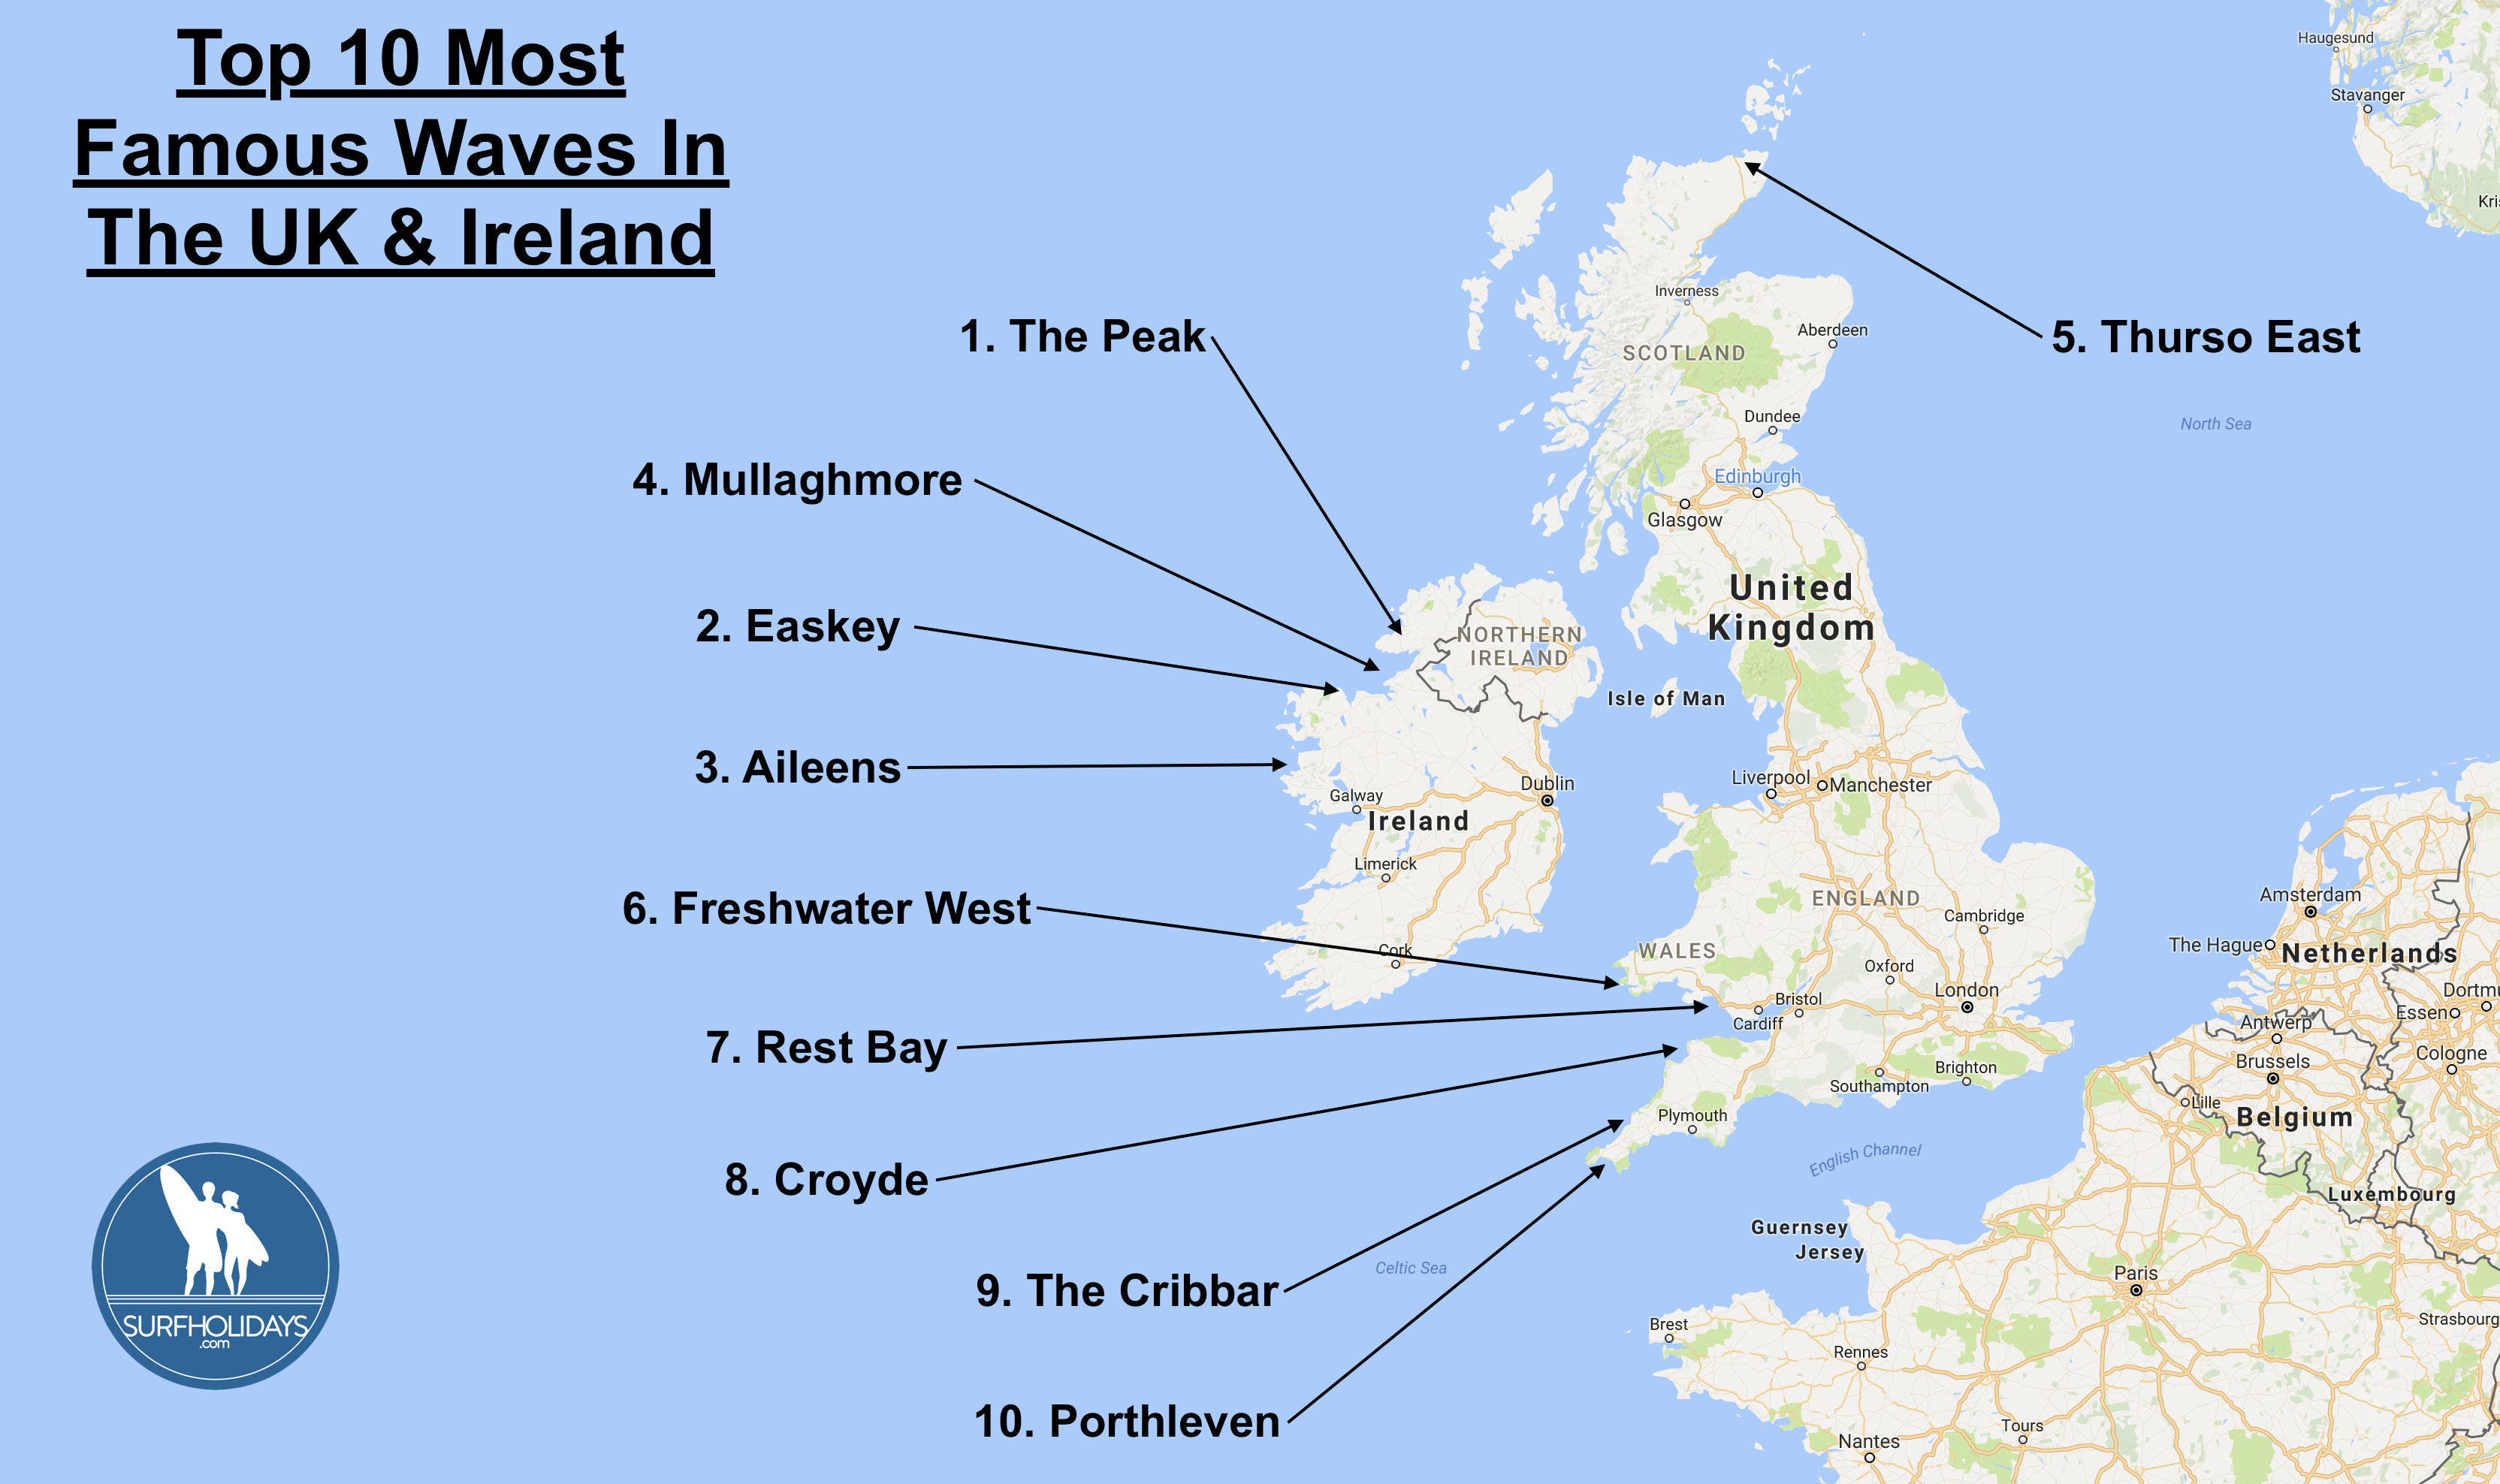 Surf blog the top 10 most famous waves in the uk and ireland surf holiday should check out the ten waves listed below so you can make the most of your escape and seek out the best waves the uk and ireland have to publicscrutiny Images